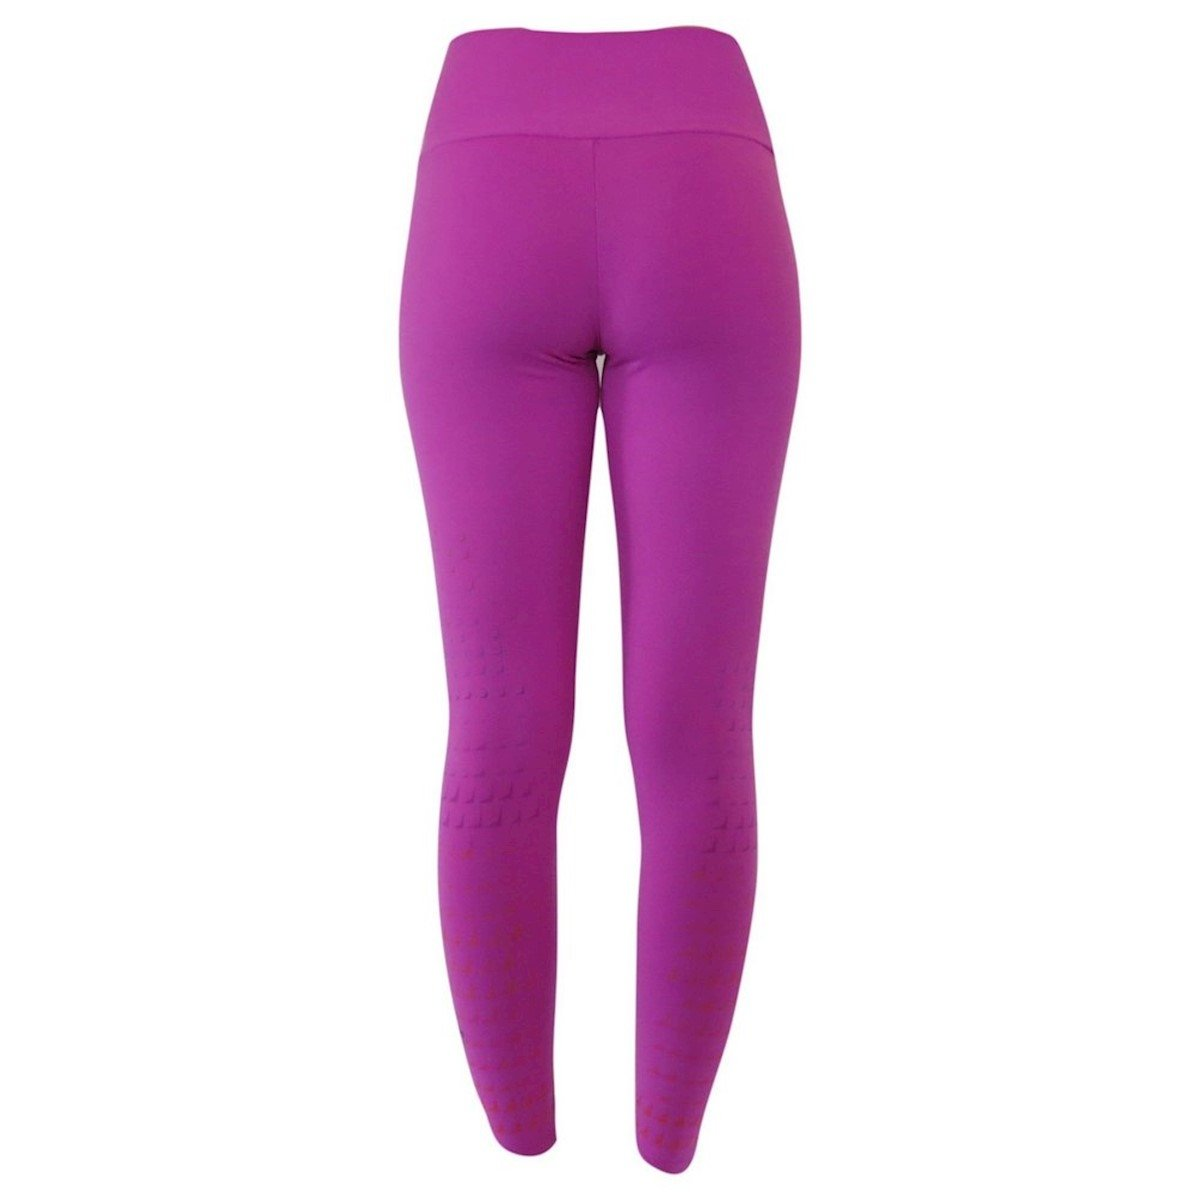 Fit Rosa Supplex Legging Feminina Alto Silk Legging Supplex Giro q1IZwSx8